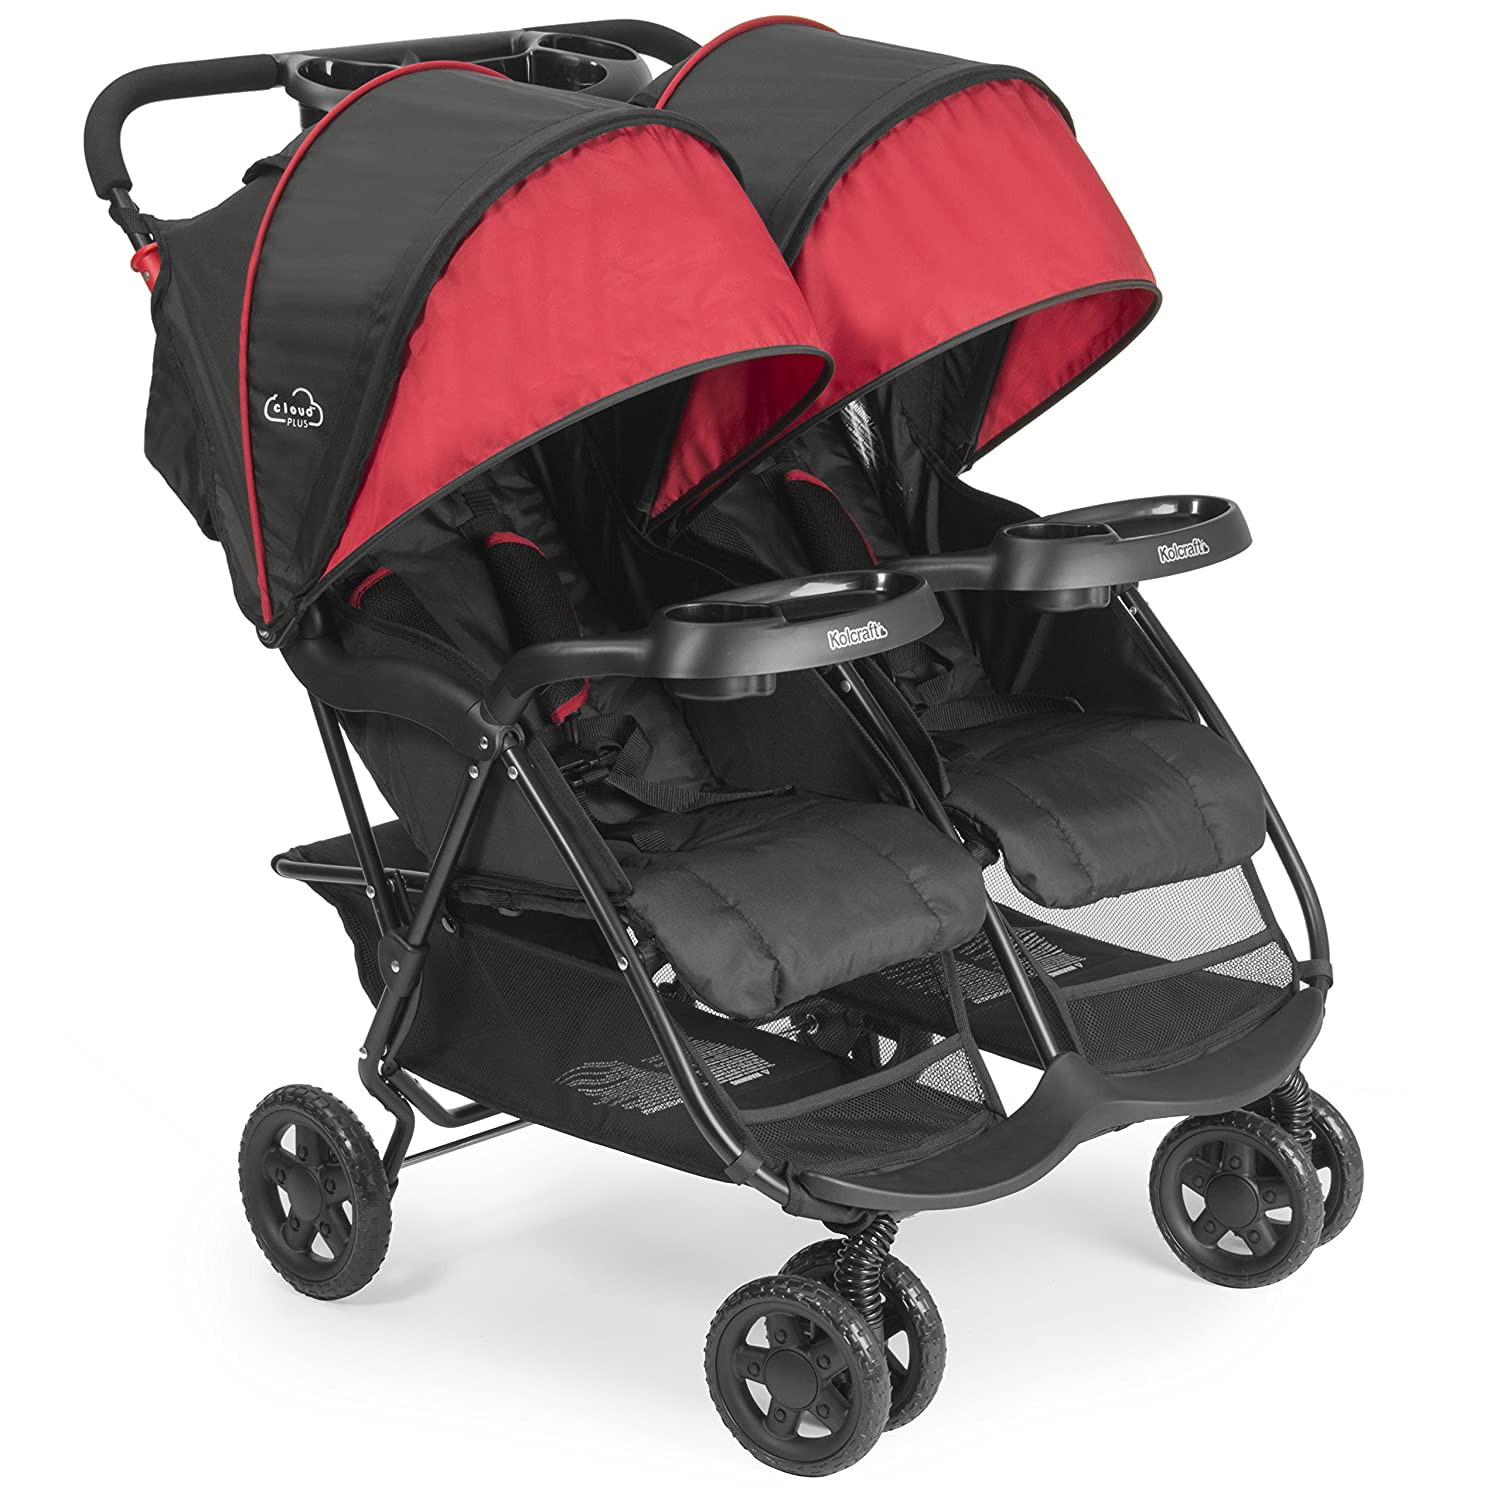 Sid by Side Double Stroller